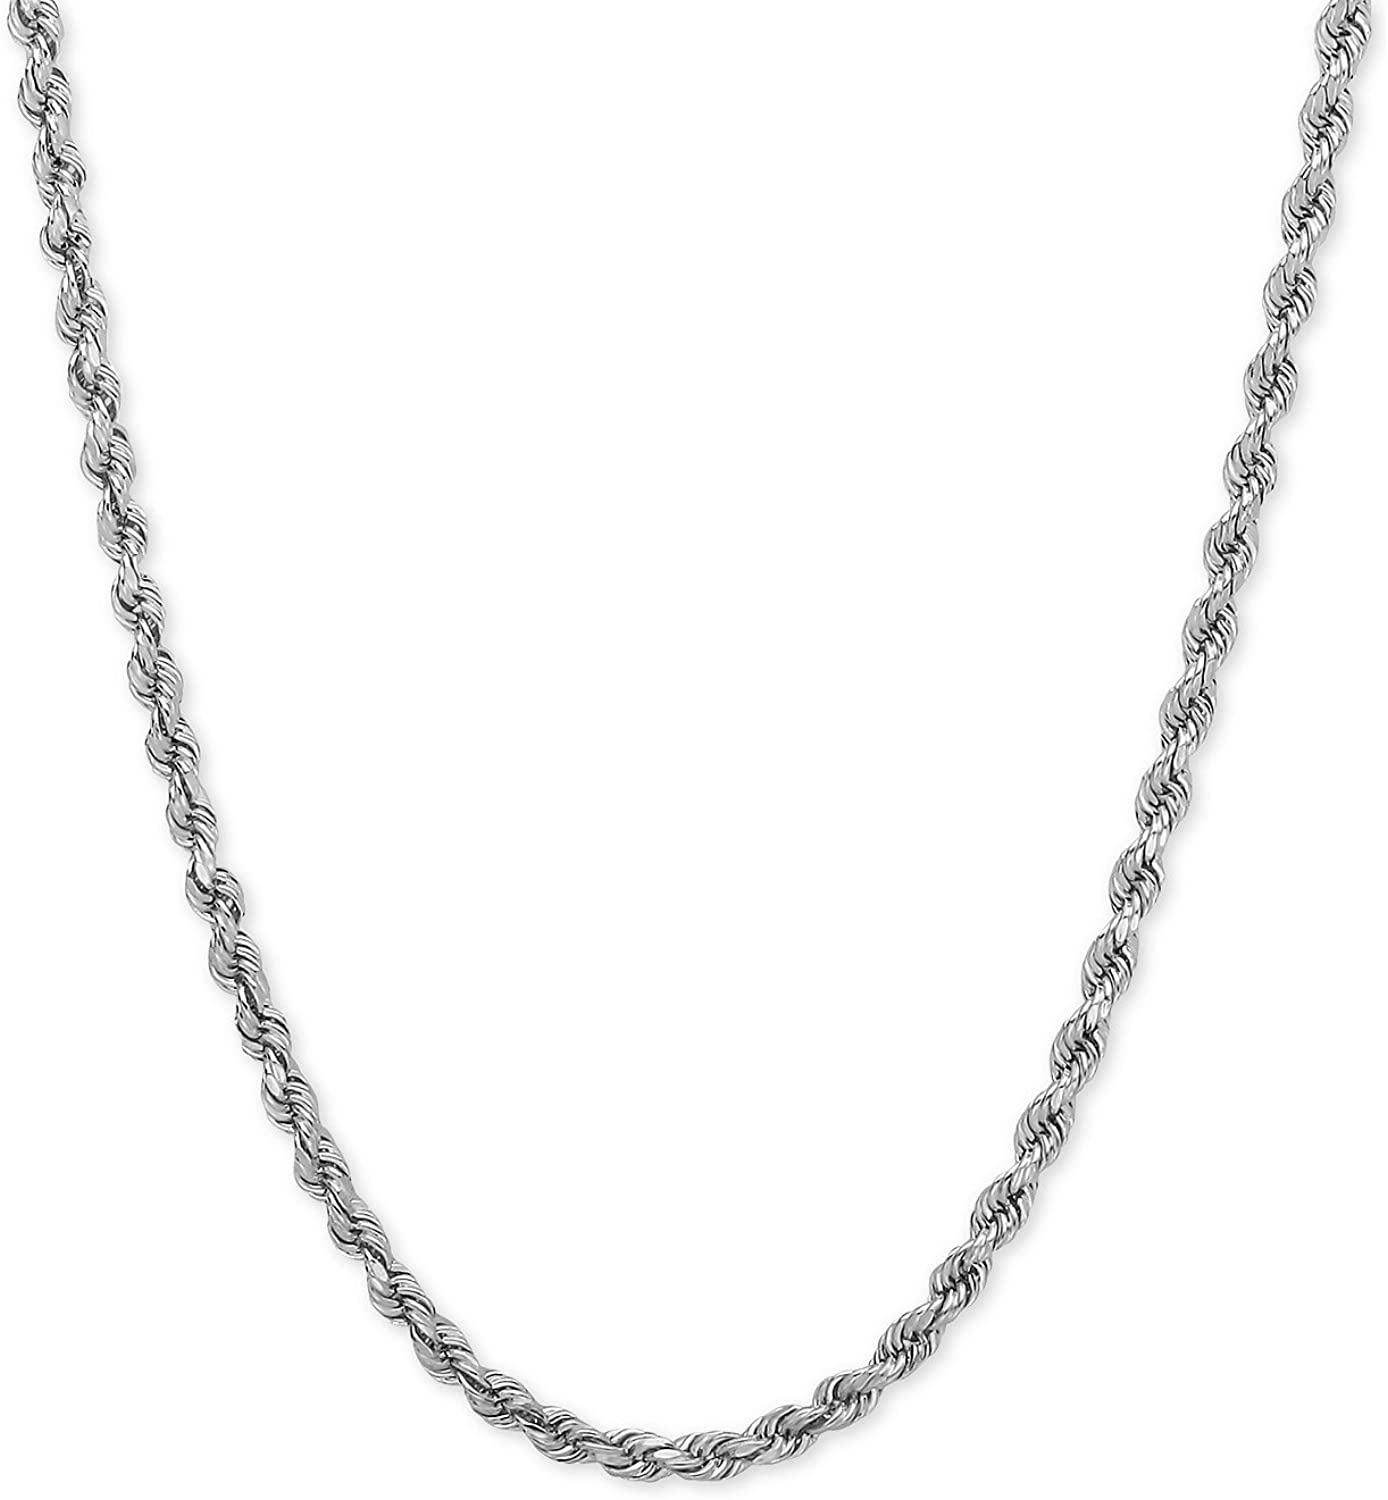 14k REAL White Gold 1.50mm,2mm Or 2.5mm Thick Shiny Hollow Rope Chain Necklace for Pendants and Charms with Lobster-Claw Clasp (16